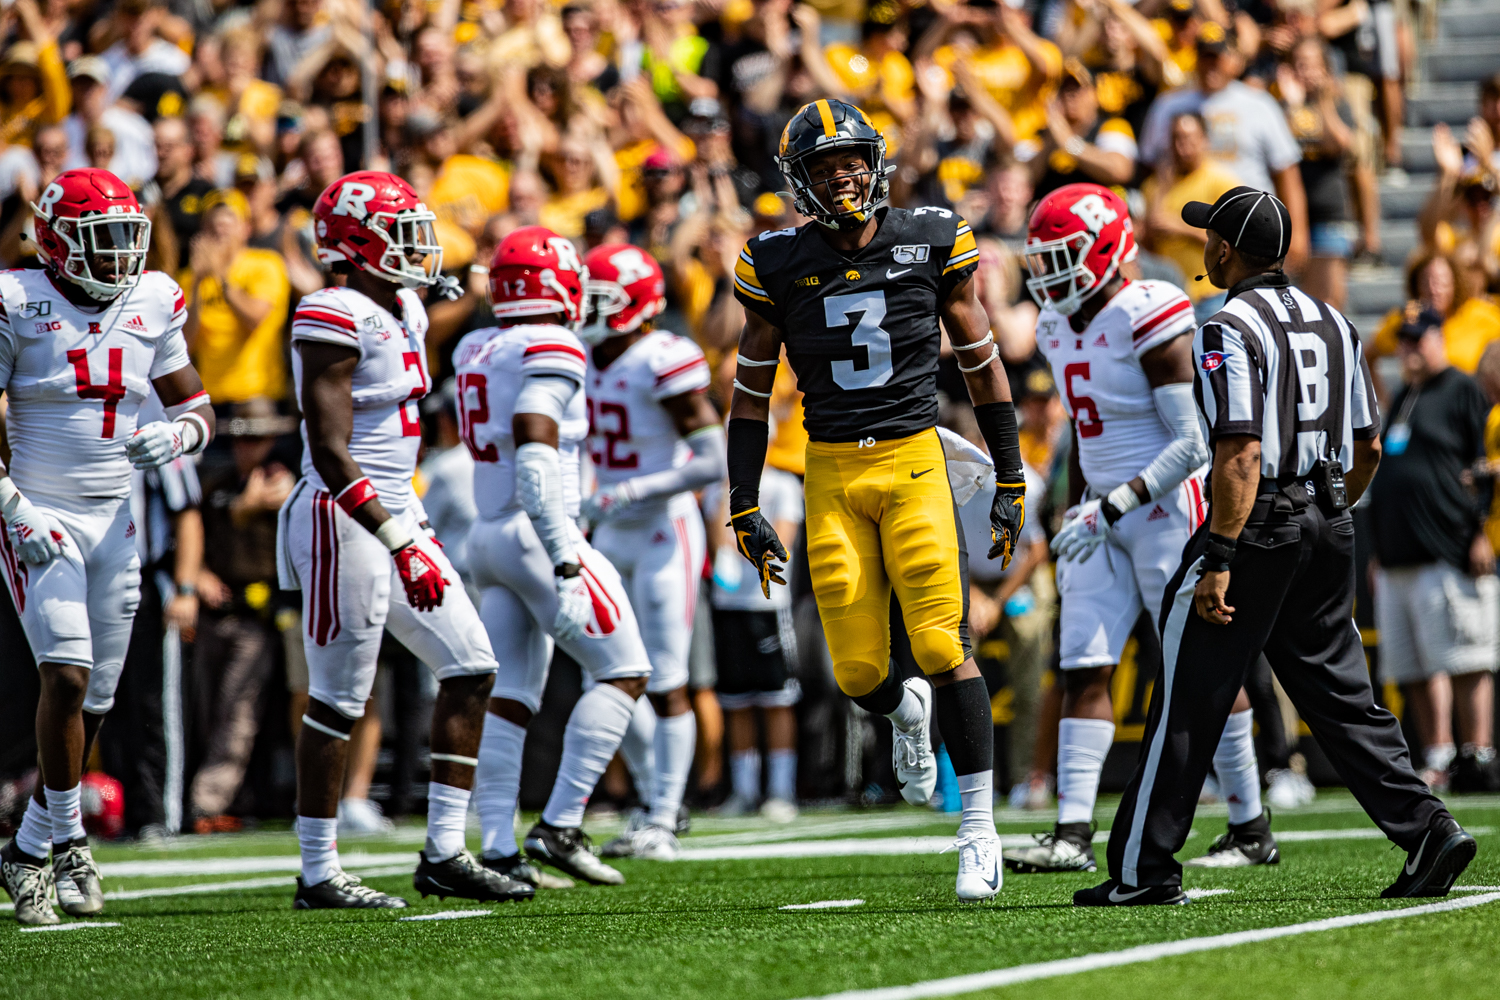 Iowa wide receiver Tyrone Tracy, Jr. celebrates after a catch during a football game between Iowa and Rutgers at Kinnick Stadium on Saturday, September 7, 2019. The Hawkeyes defeated the Scarlet Knights, 30-0.